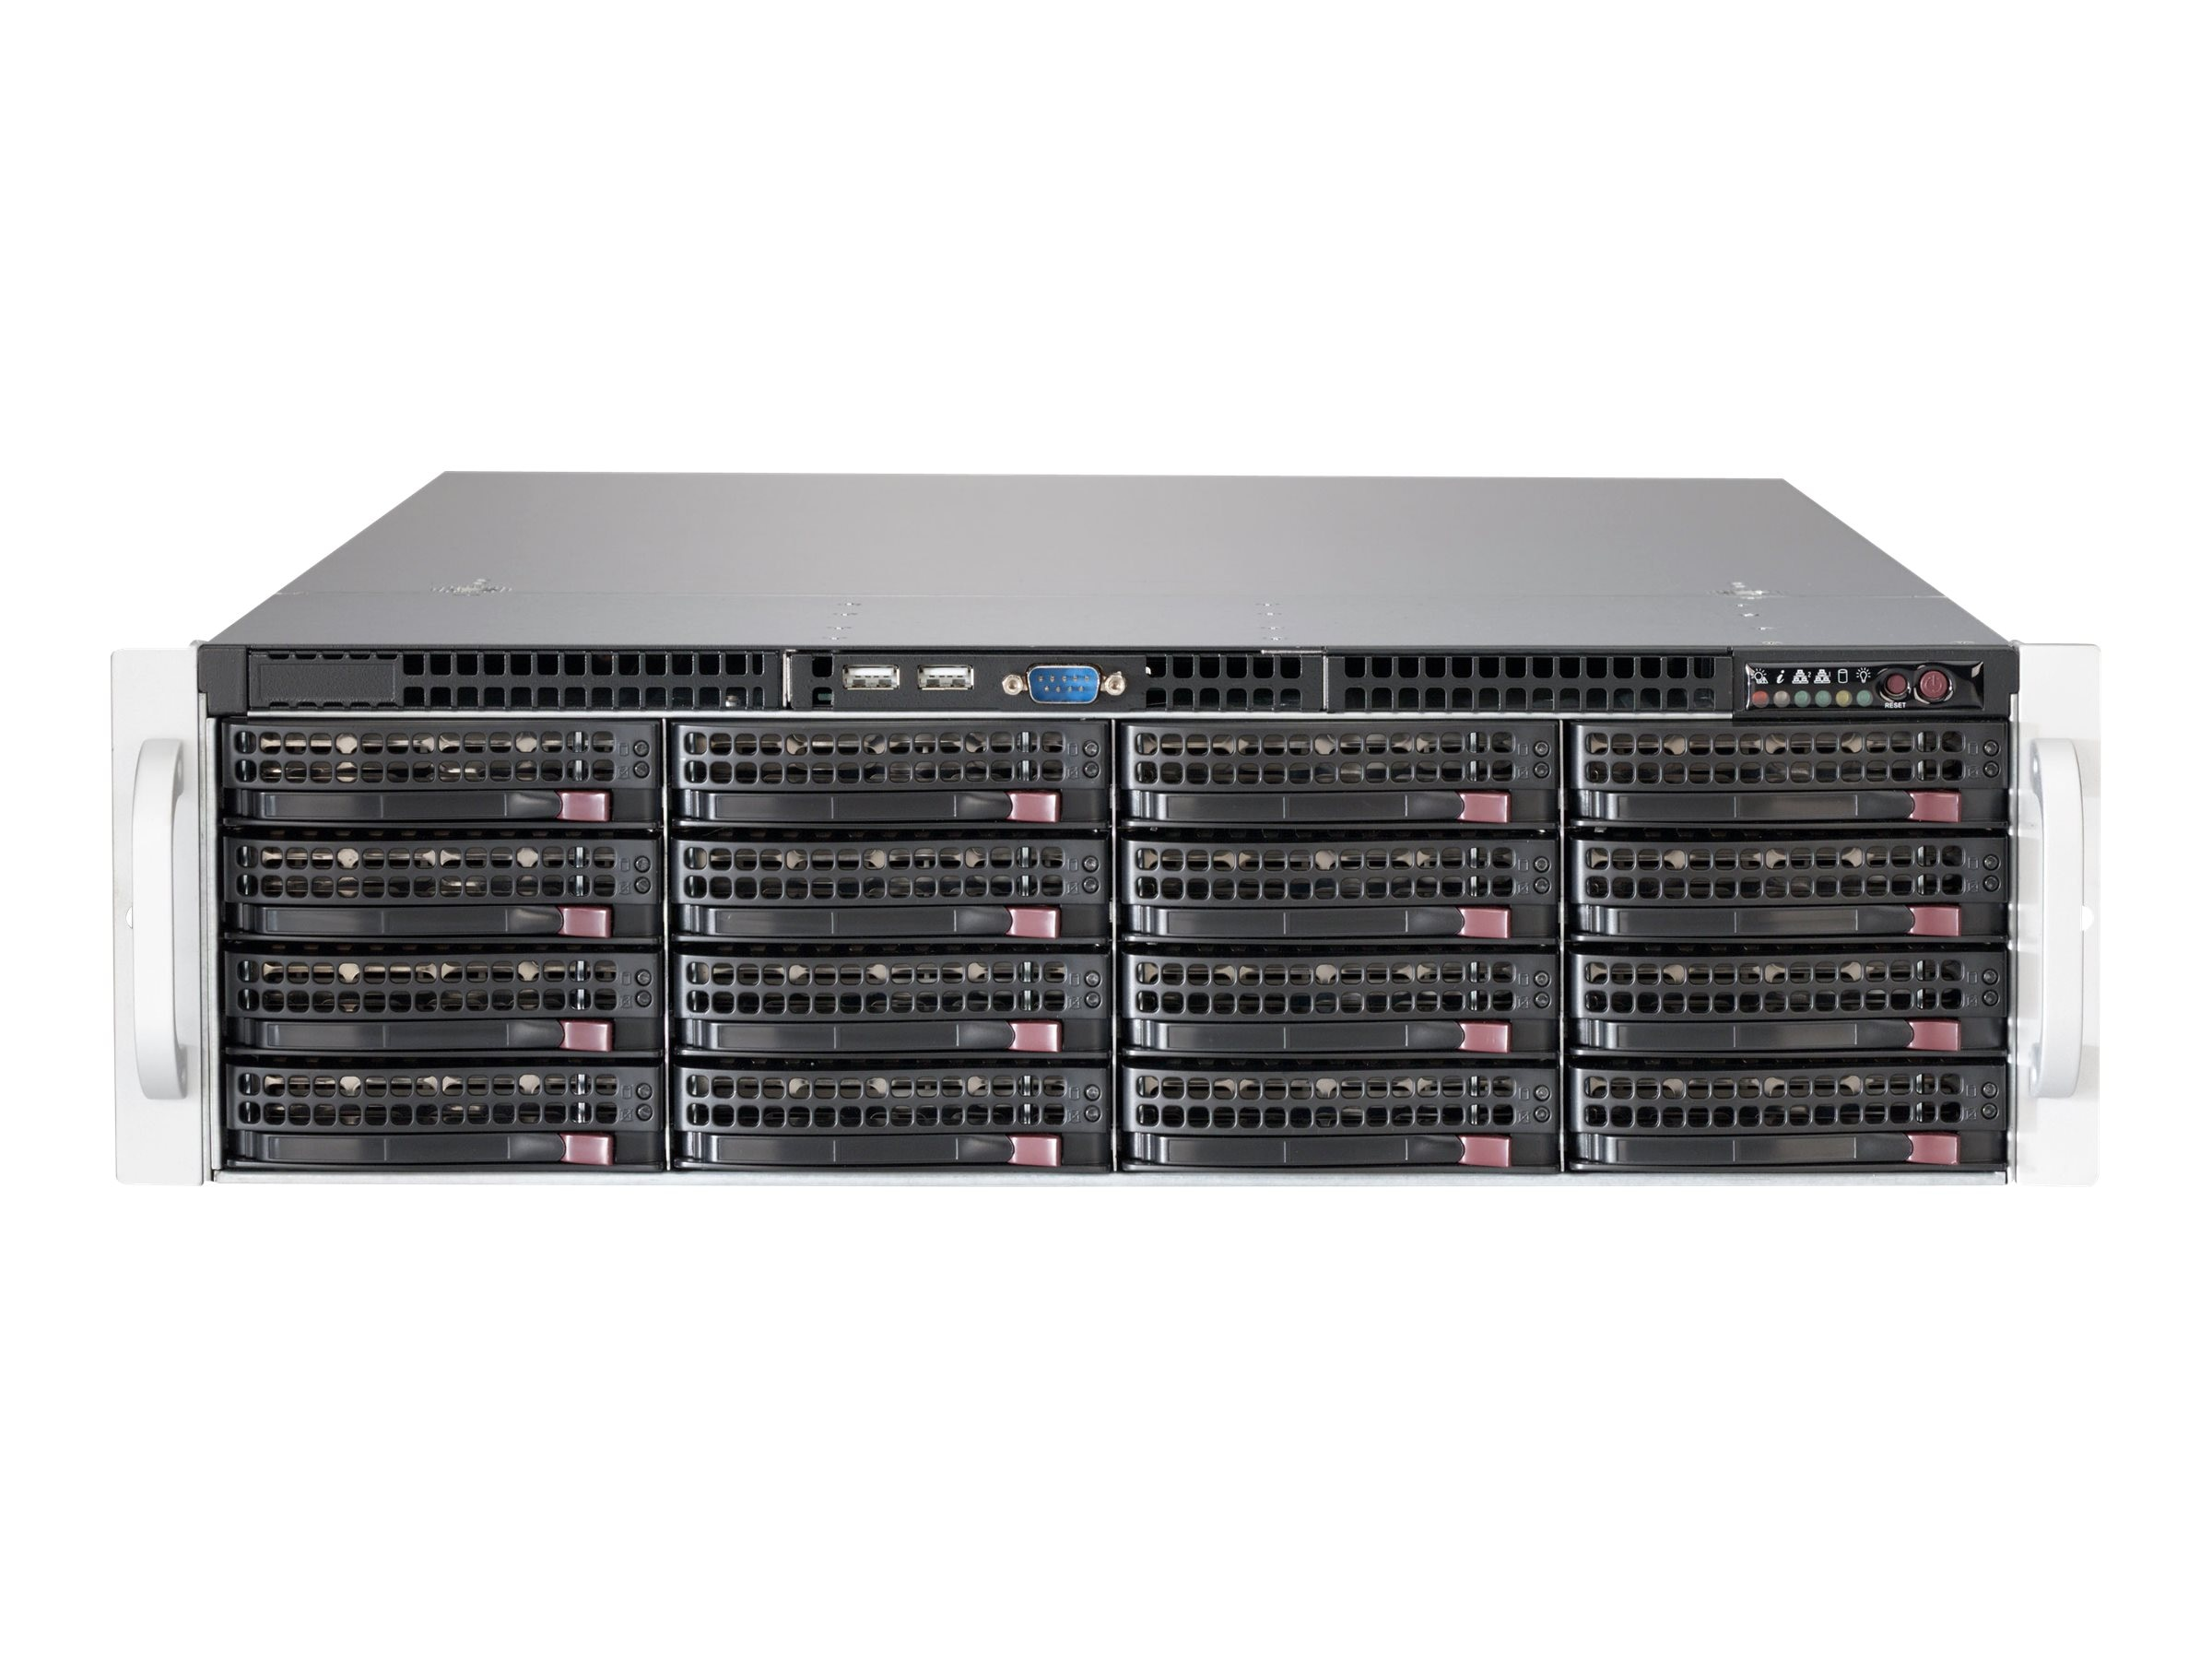 Supermicro Chassis, SuperChassis 836BE2C-R1K03JBOD 3U RM 16x3.5 HS Bays 2x1000W